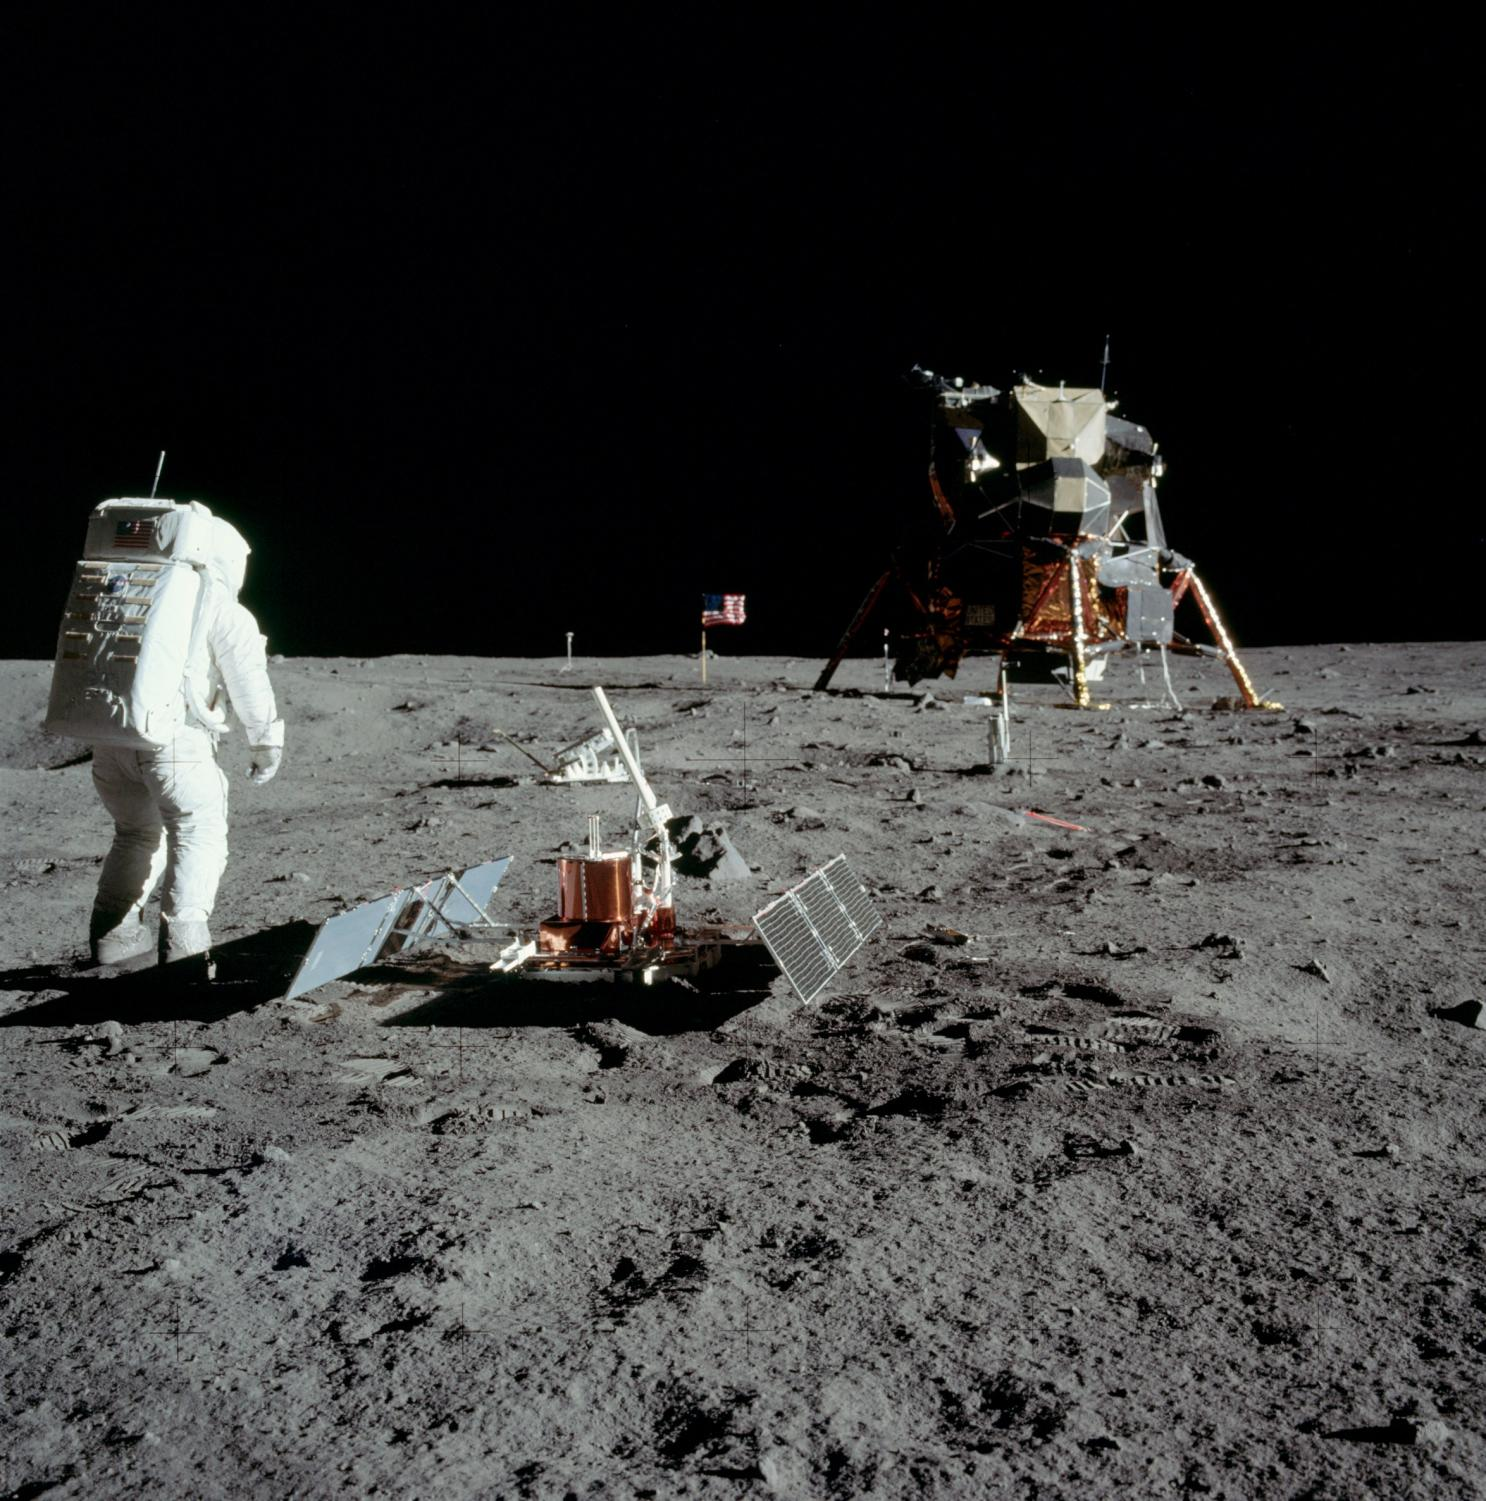 Astronauts investigating the moon